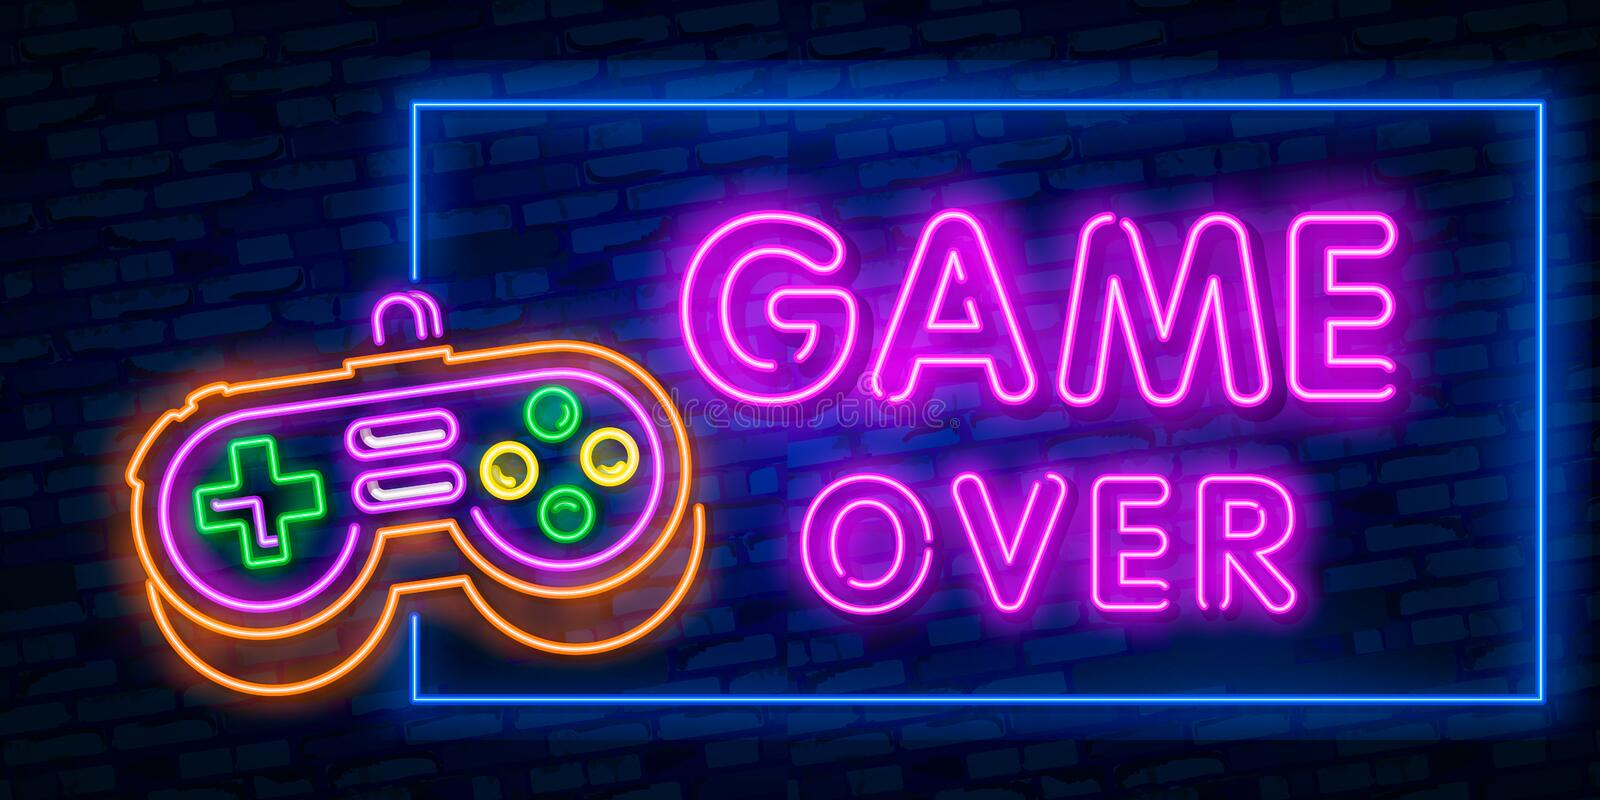 Games, over neon text with controller. Technology and entertainment concept. Advertisement design. Night bright neon sign, royalty free illustration